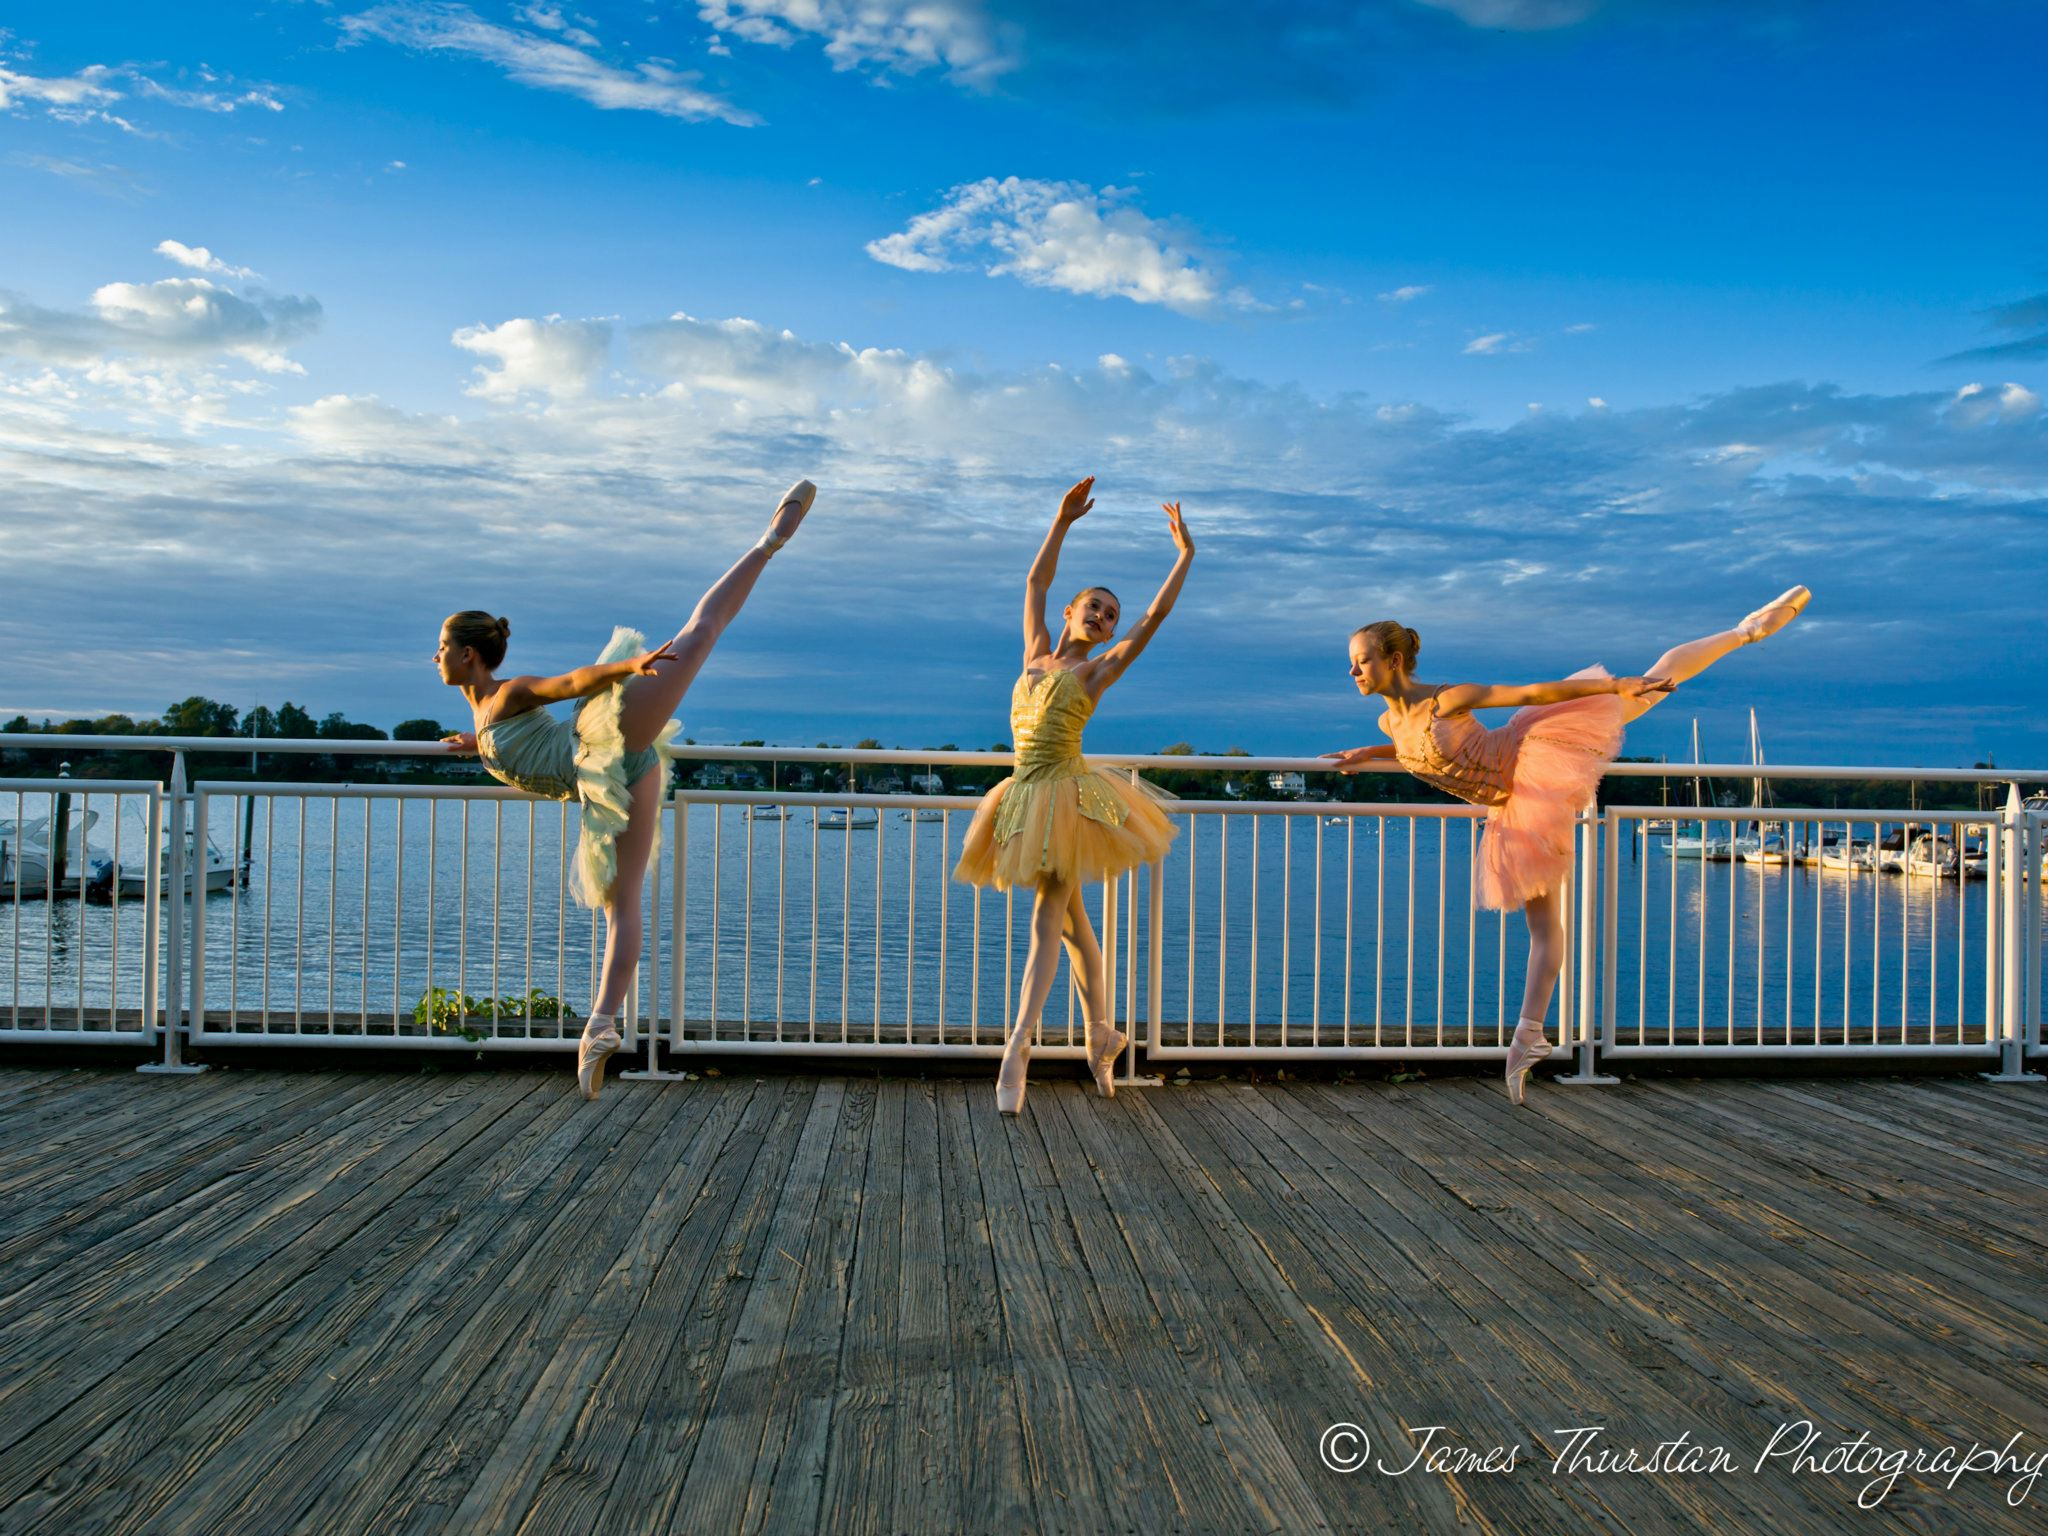 Advanced dance studio Students striking a pose on the dock